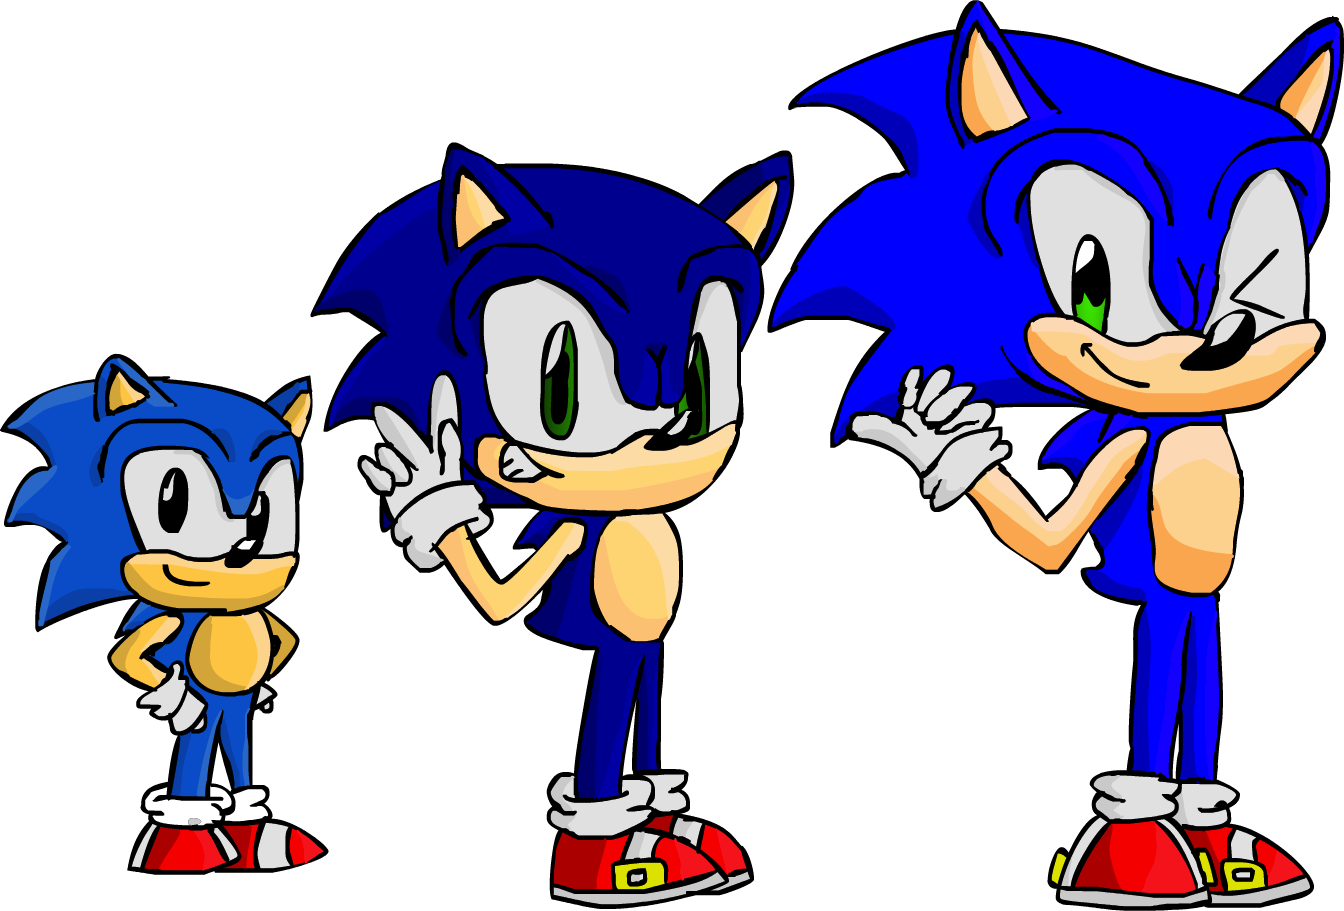 Sonic Sonic Sonic by DigitalPear